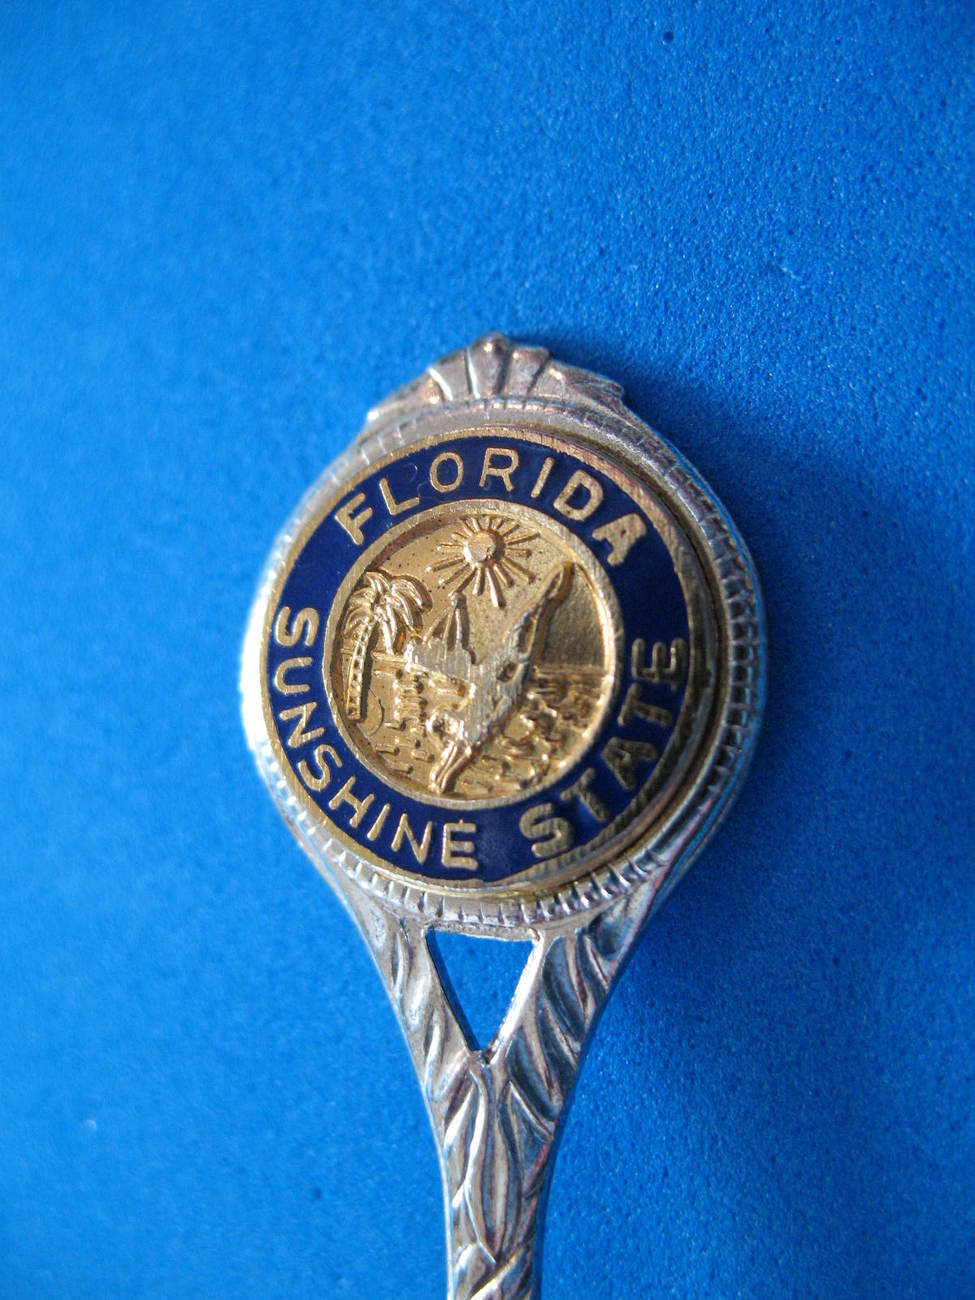 Primary image for Florida Sterling Silver Souvenir Collector Spoon Collectible Sunshine State